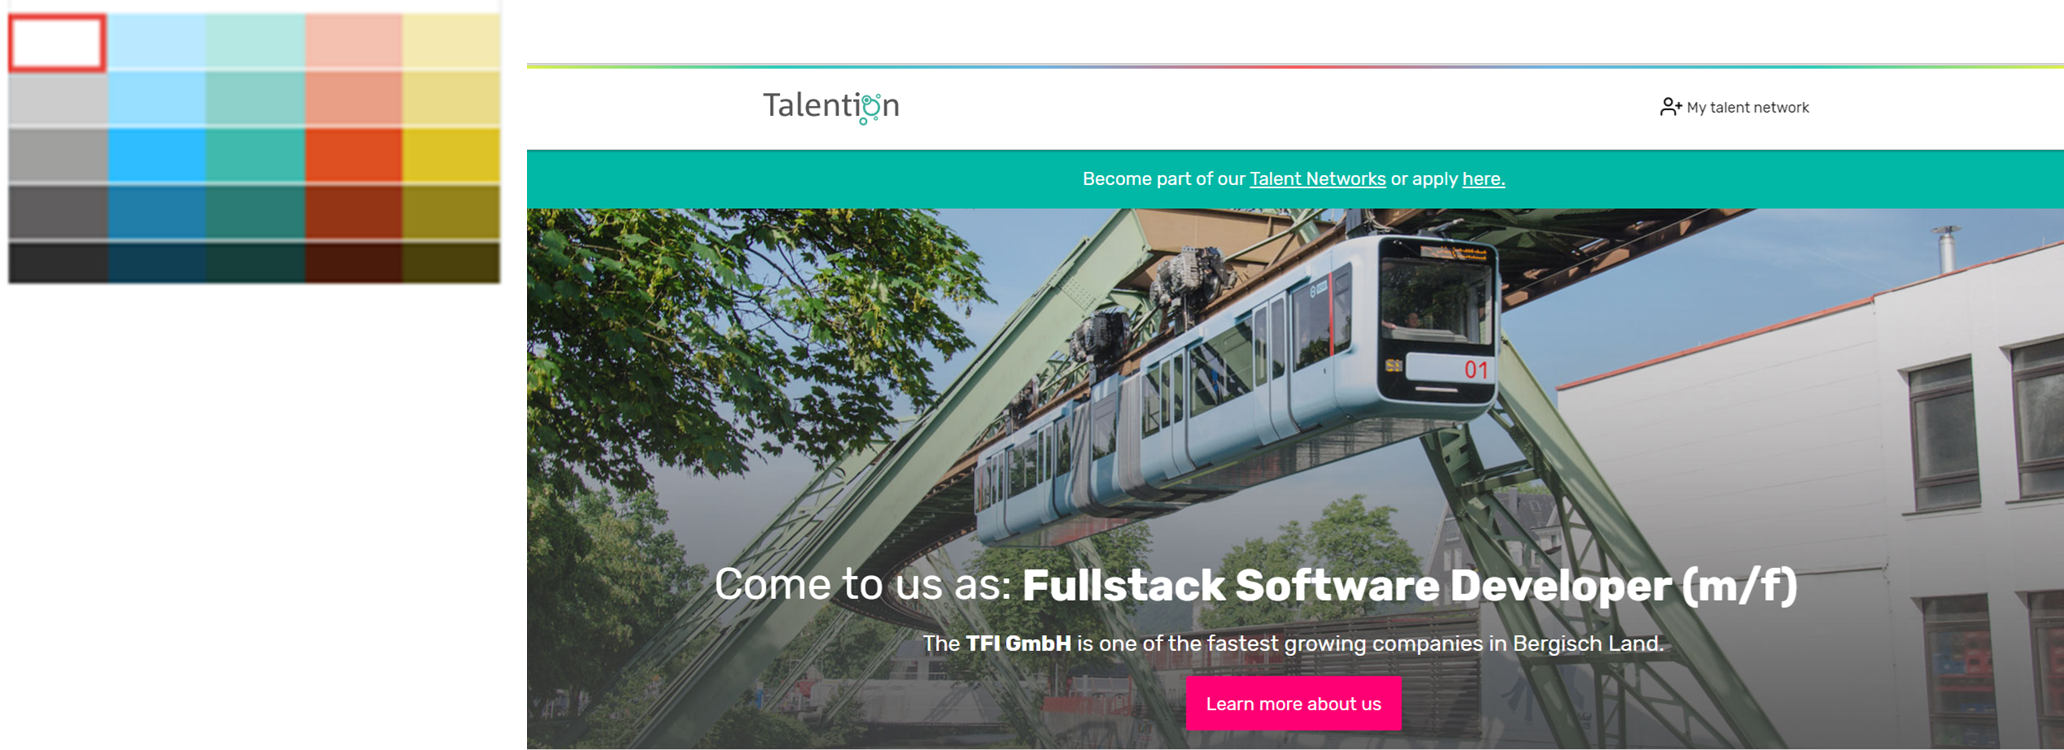 Talention talent network color choice 2